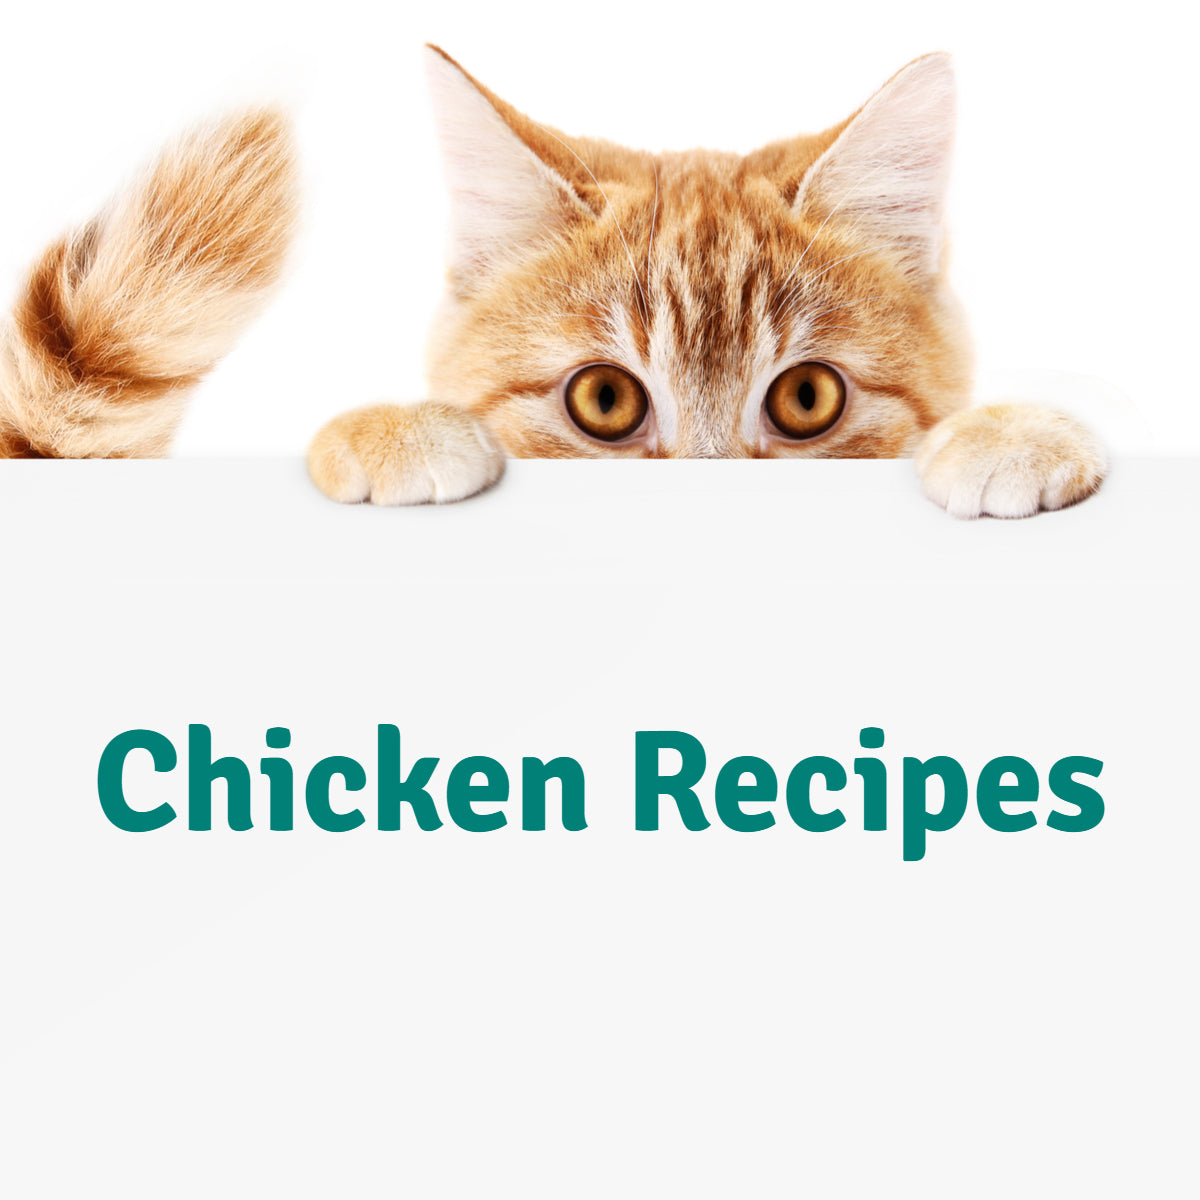 Chicken Recipes for Cats